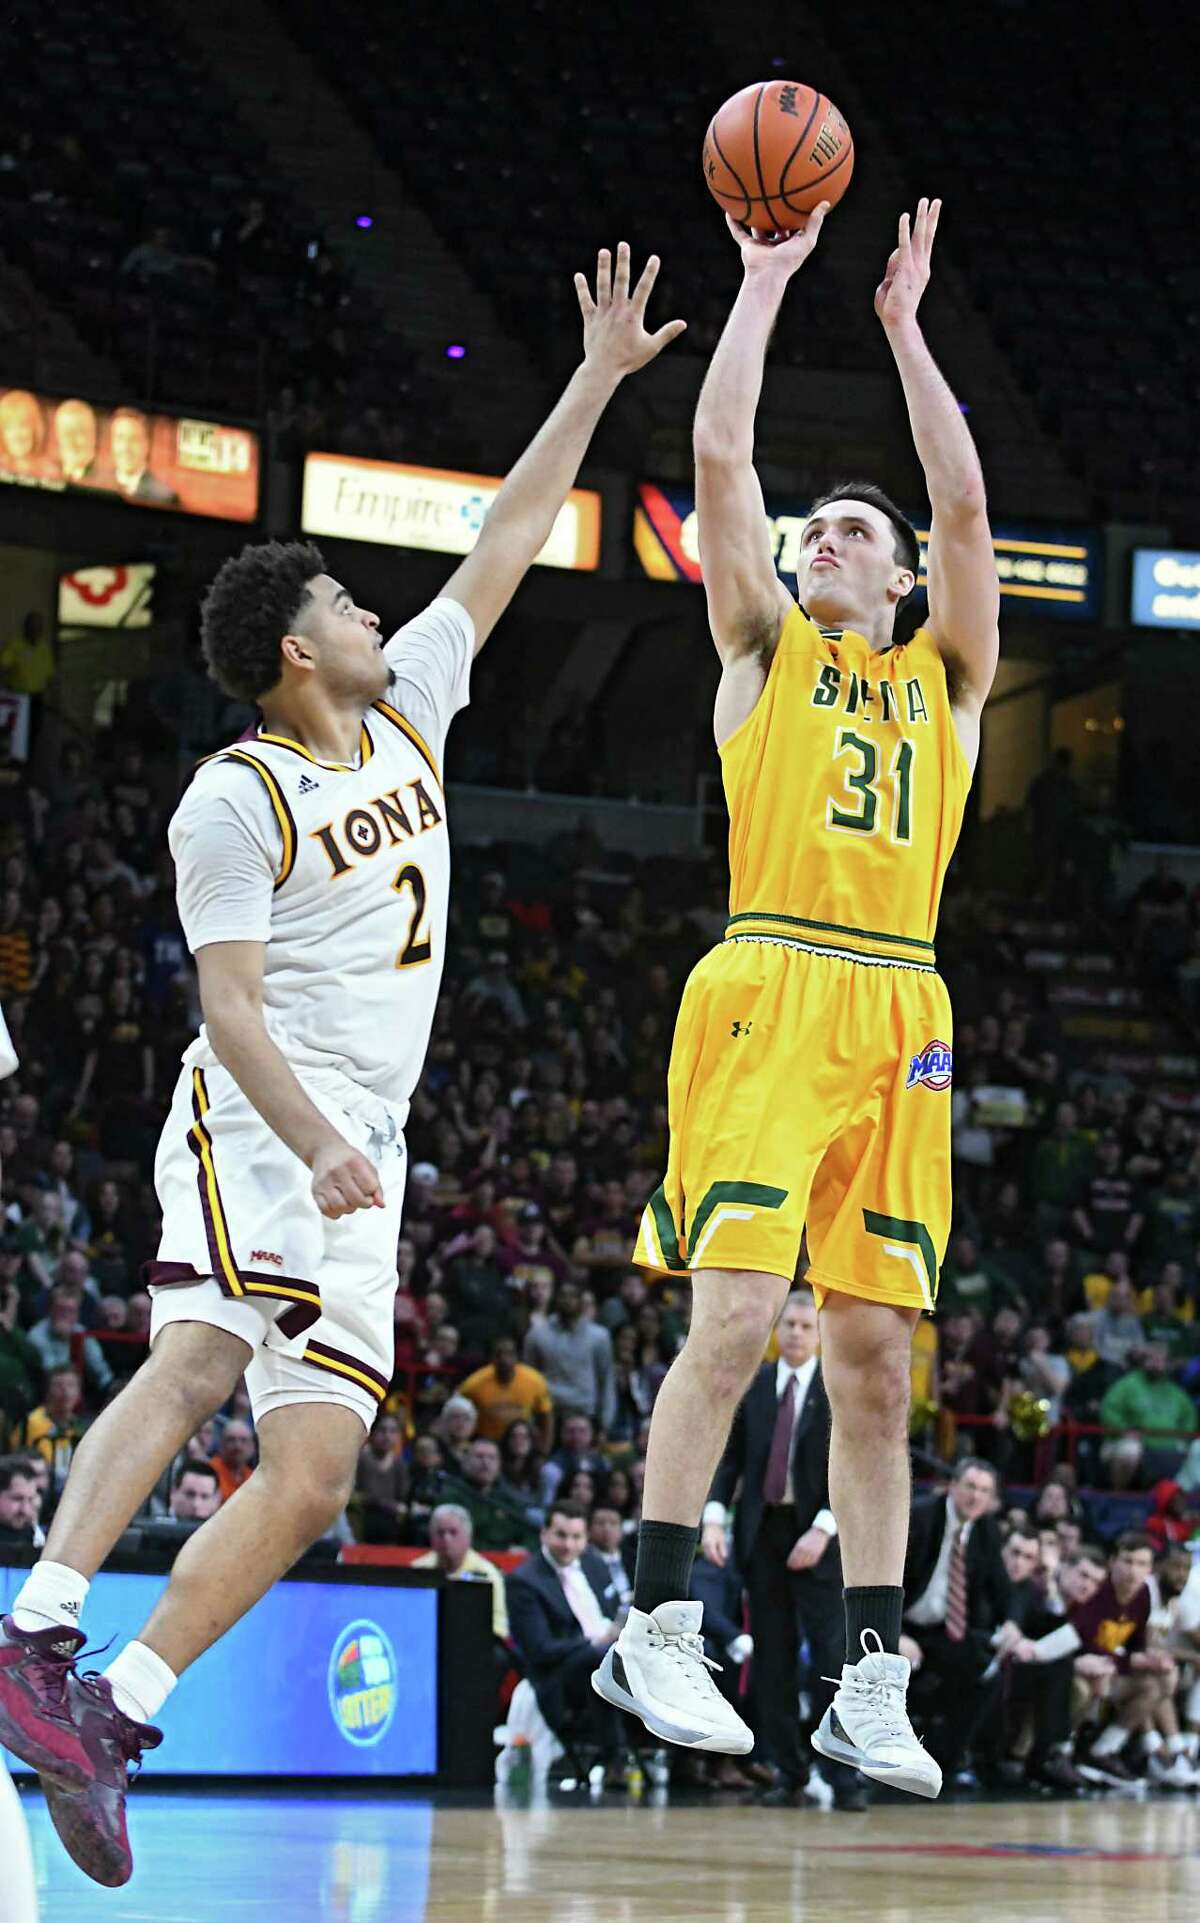 Siena's Brett Bisping is guarded by Iona's E.J. Crawford as he takes a jump shot during the MAAC men's championship game at the Times Union Center on Monday, March. 6, 2017 in Albany, N.Y. (Lori Van Buren / Times Union)